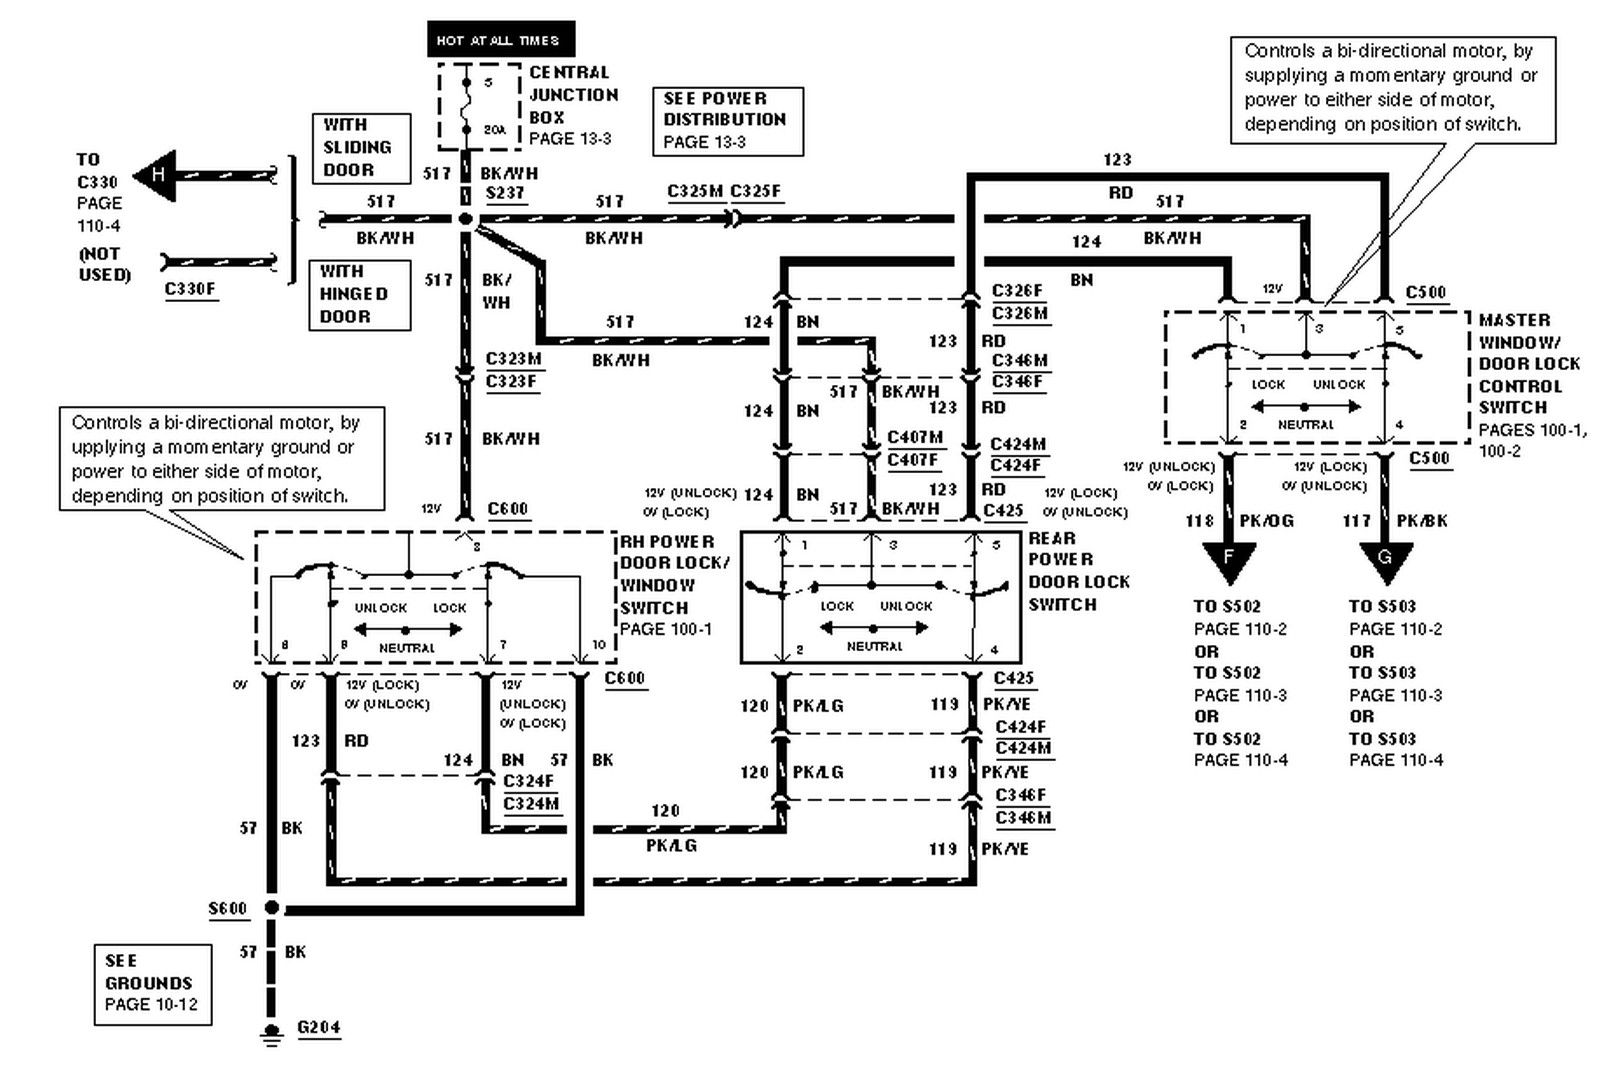 80 2010_11_05_235941_99_e_350_power_door_lock_wiring_diagram_e574233ae37af9677ff5fddb790386a28f9dd7ad 99 f150 wiring diagram 99 f150 stereo wiring diagram \u2022 wiring 1987 Ford Ranger Wiring Harness at eliteediting.co